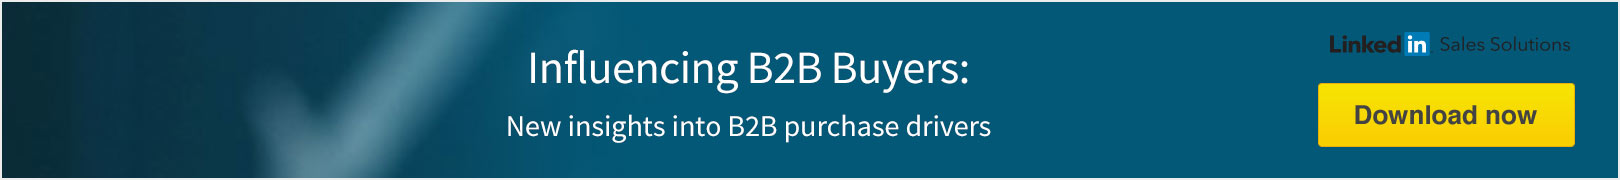 influencing-B2B-buyers